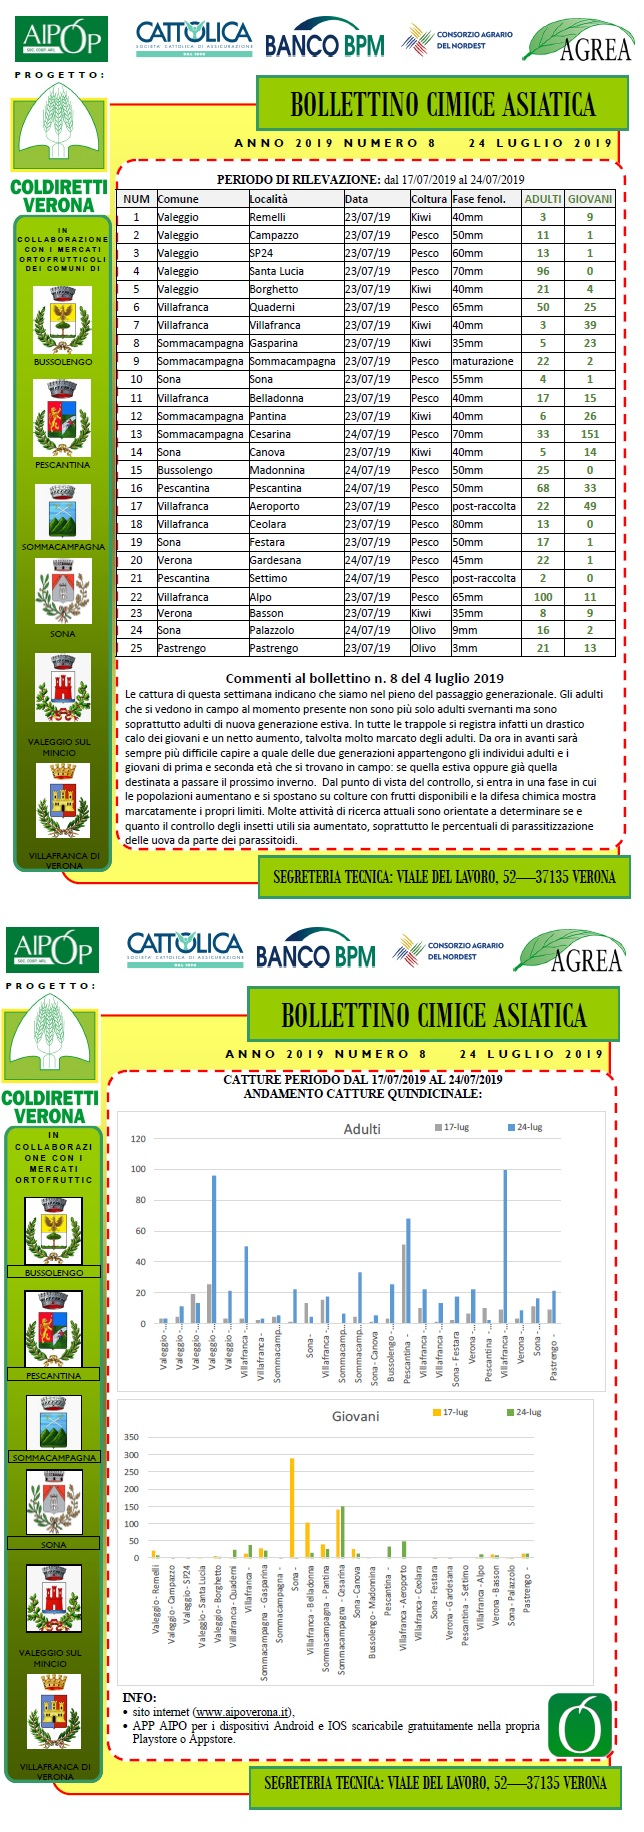 BOLLETTINO CIMICE ASIATICA N. 8 DEL 24/07/2019